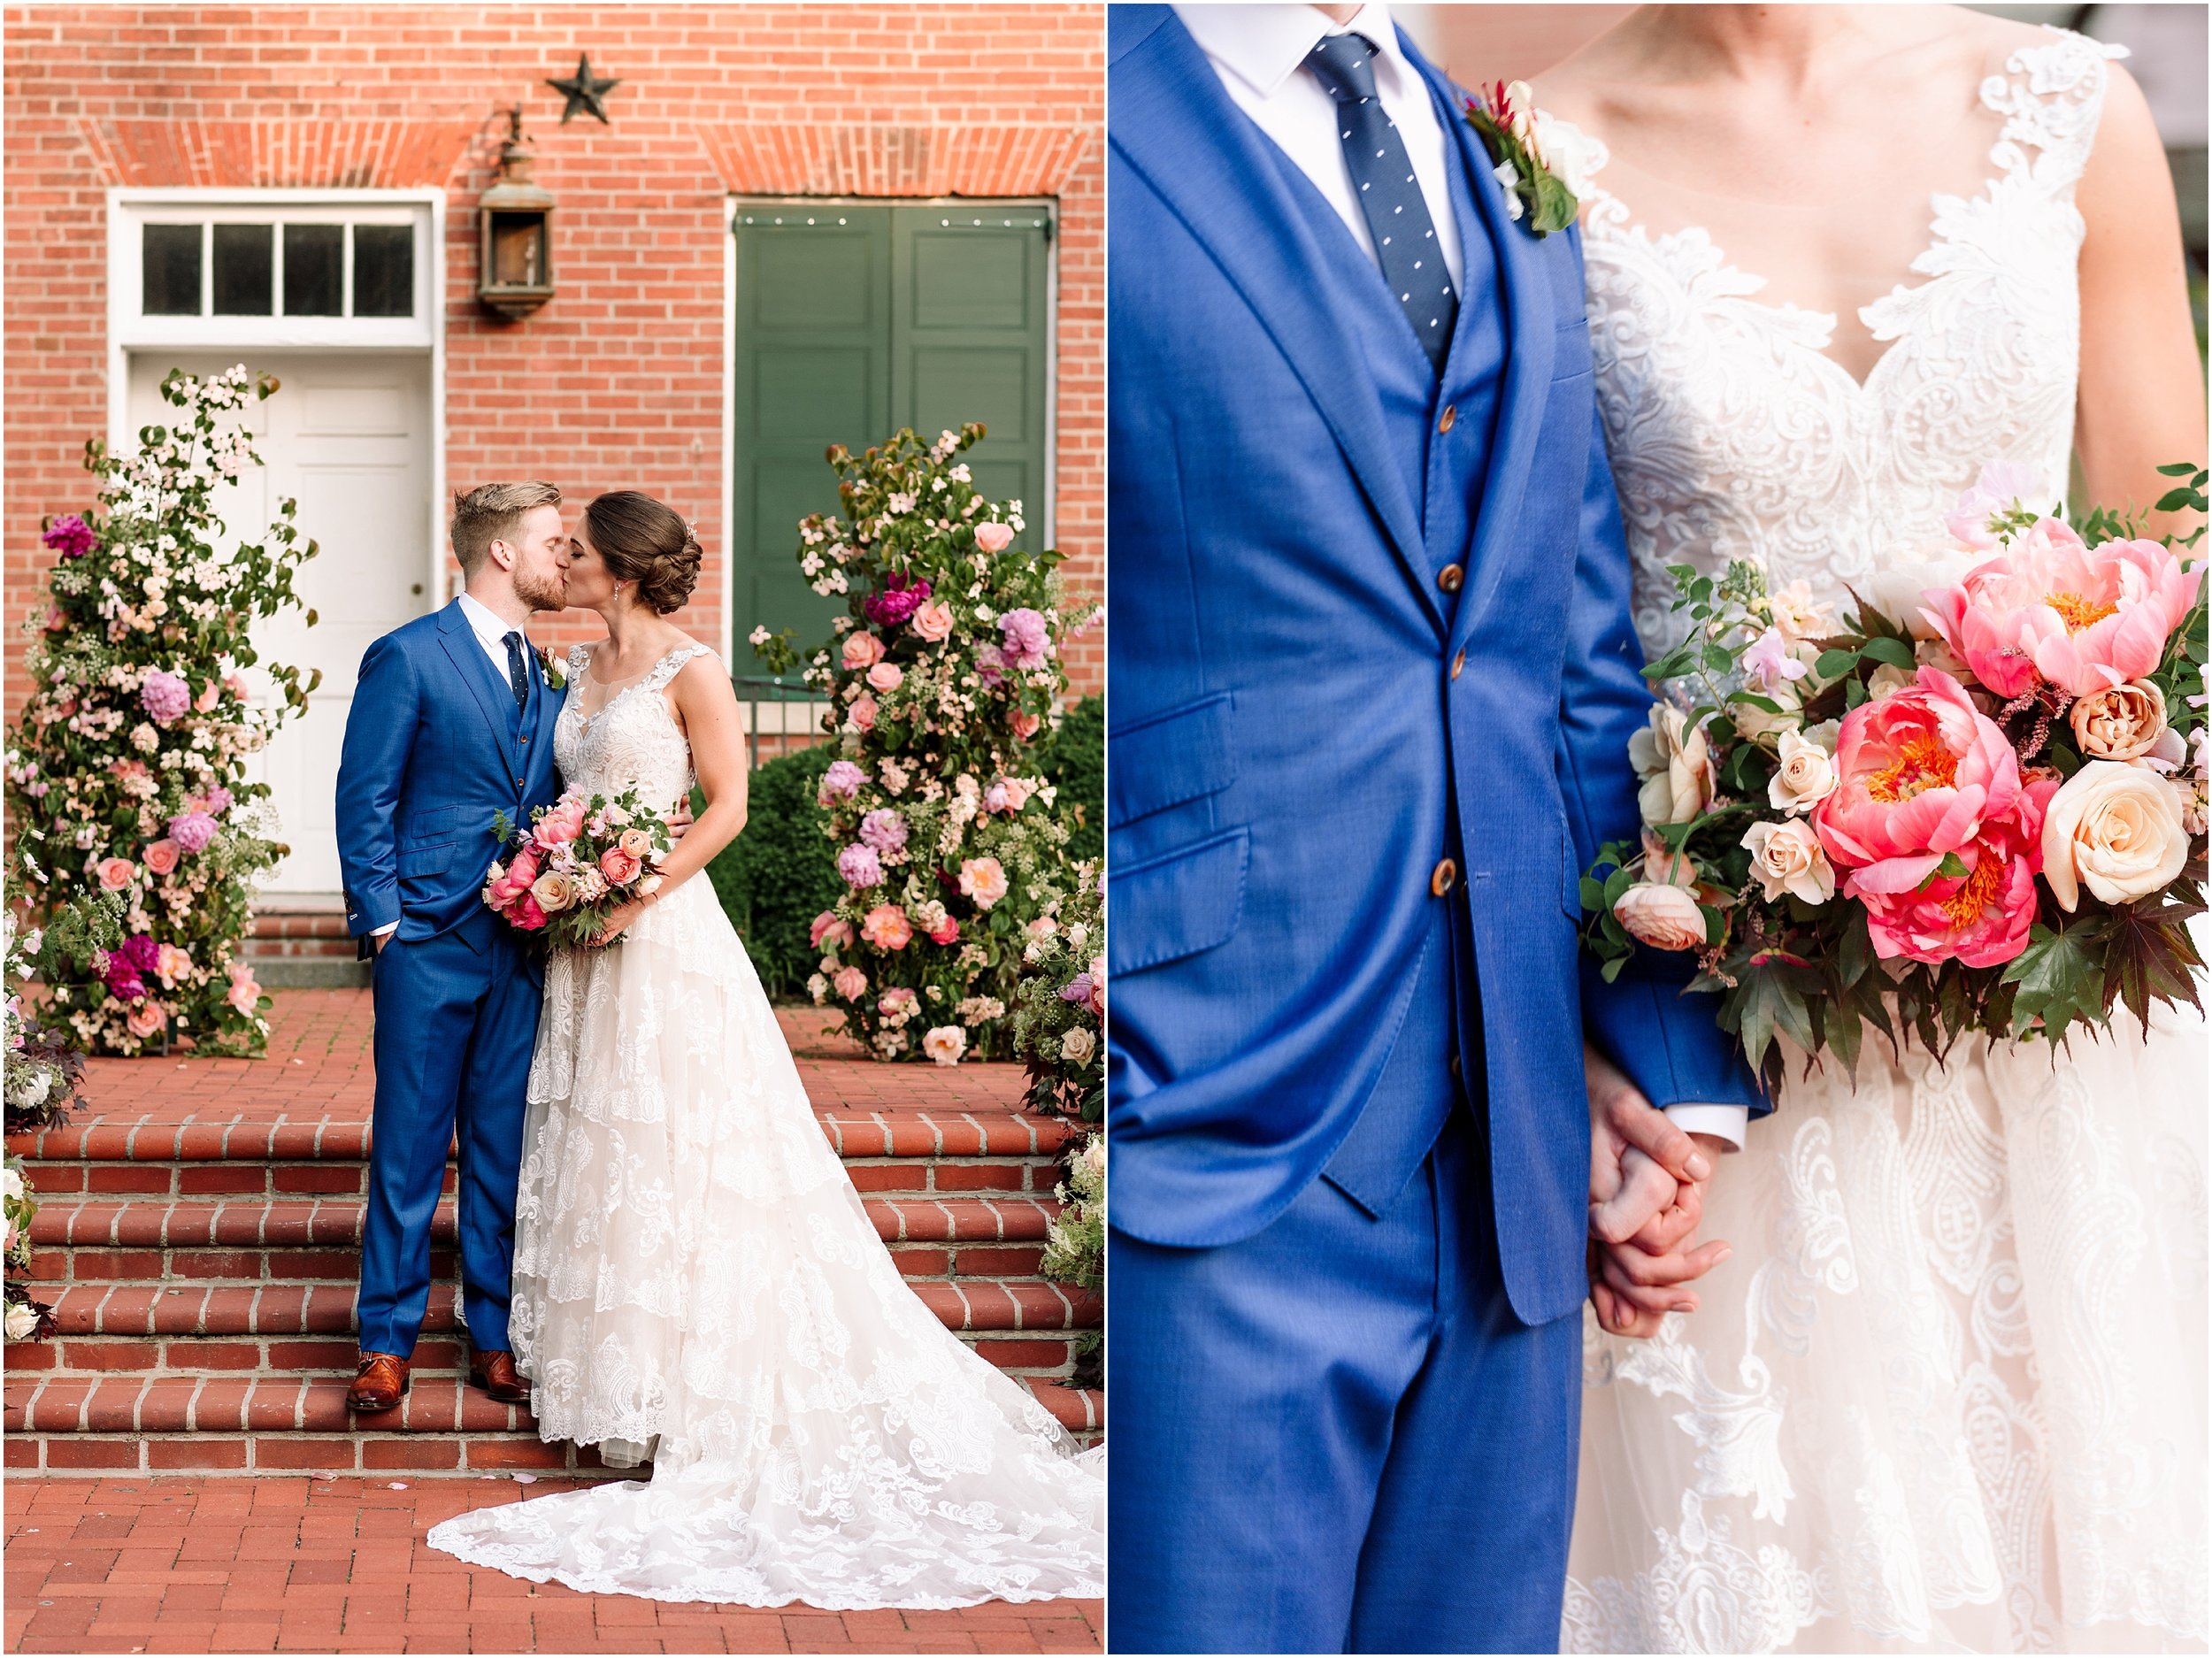 hannah leigh photography 1840s plaza wedding baltimore md_0072.jpg